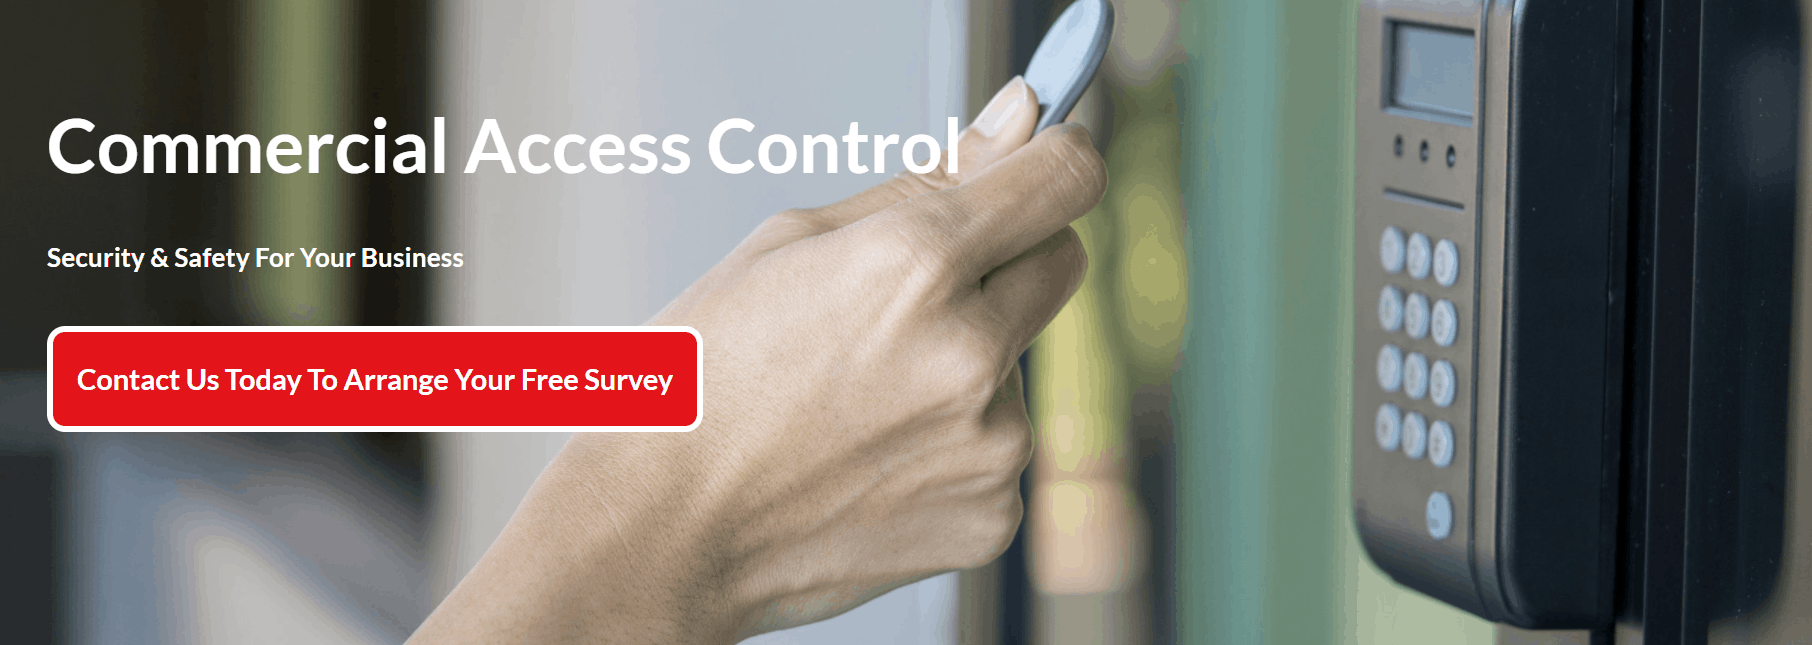 Commercial Access Control for Mobile